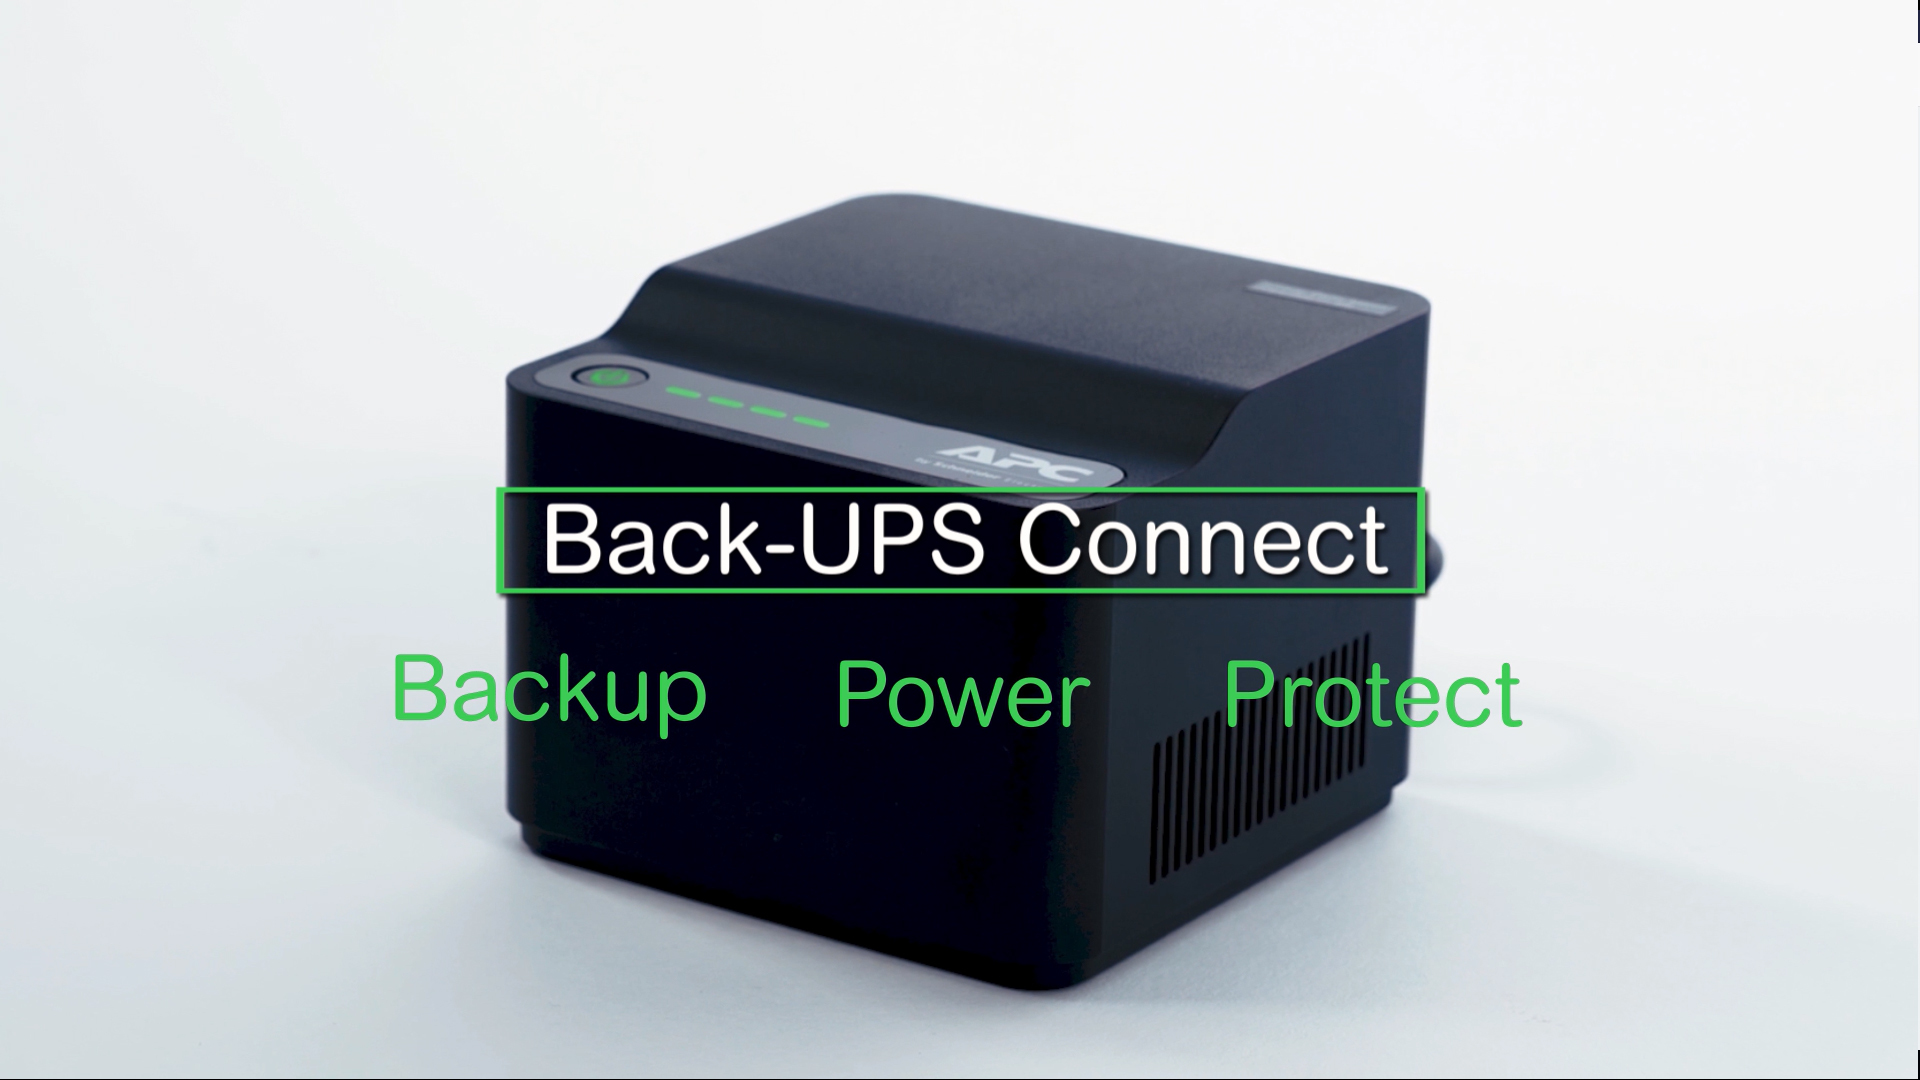 APC Back-UPS Connect for VoIP, Routers, and Modems Backup Power